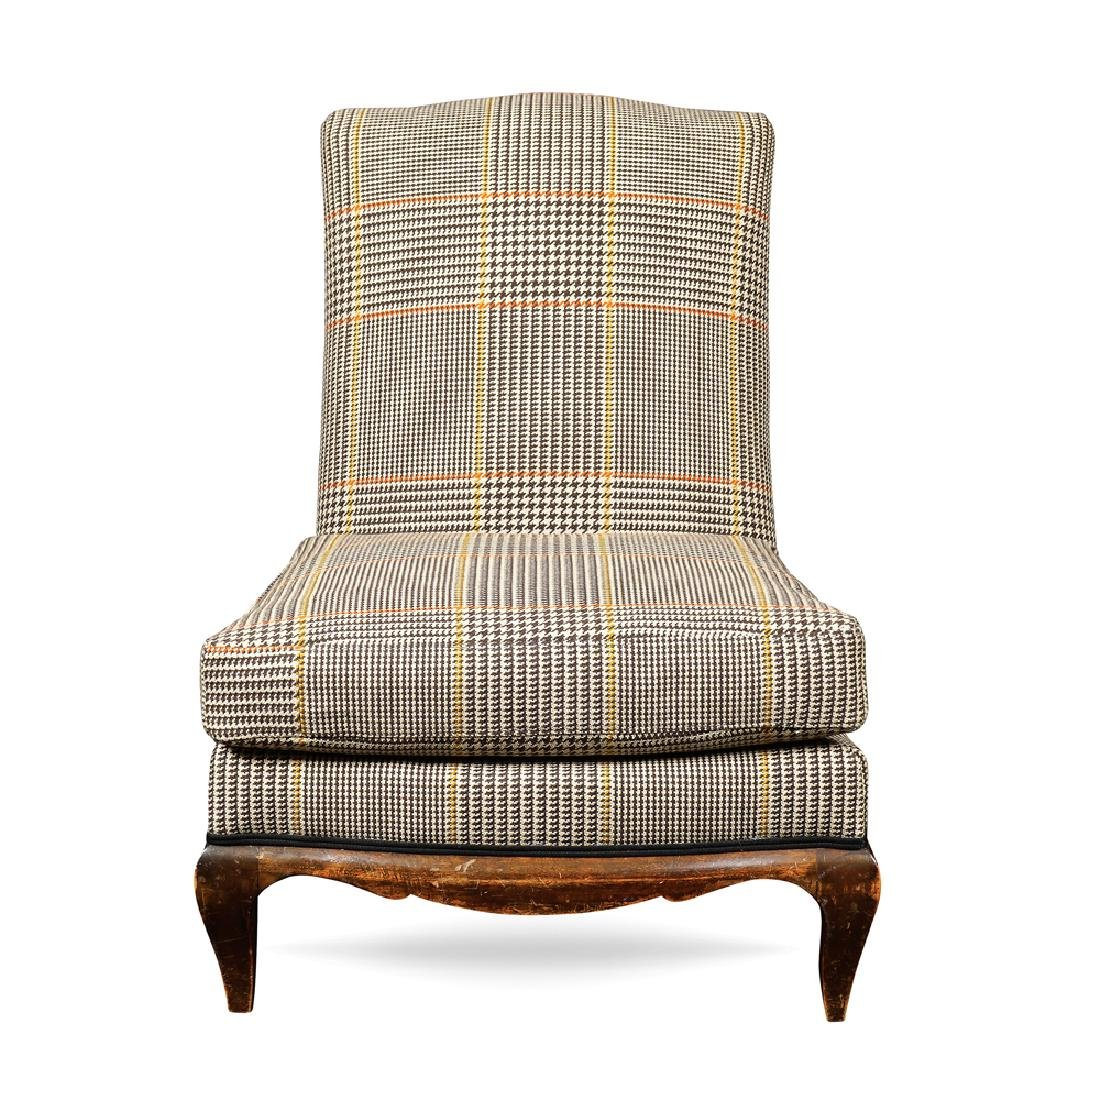 A low armchair Italy early 20th century 76x56x46 cm.